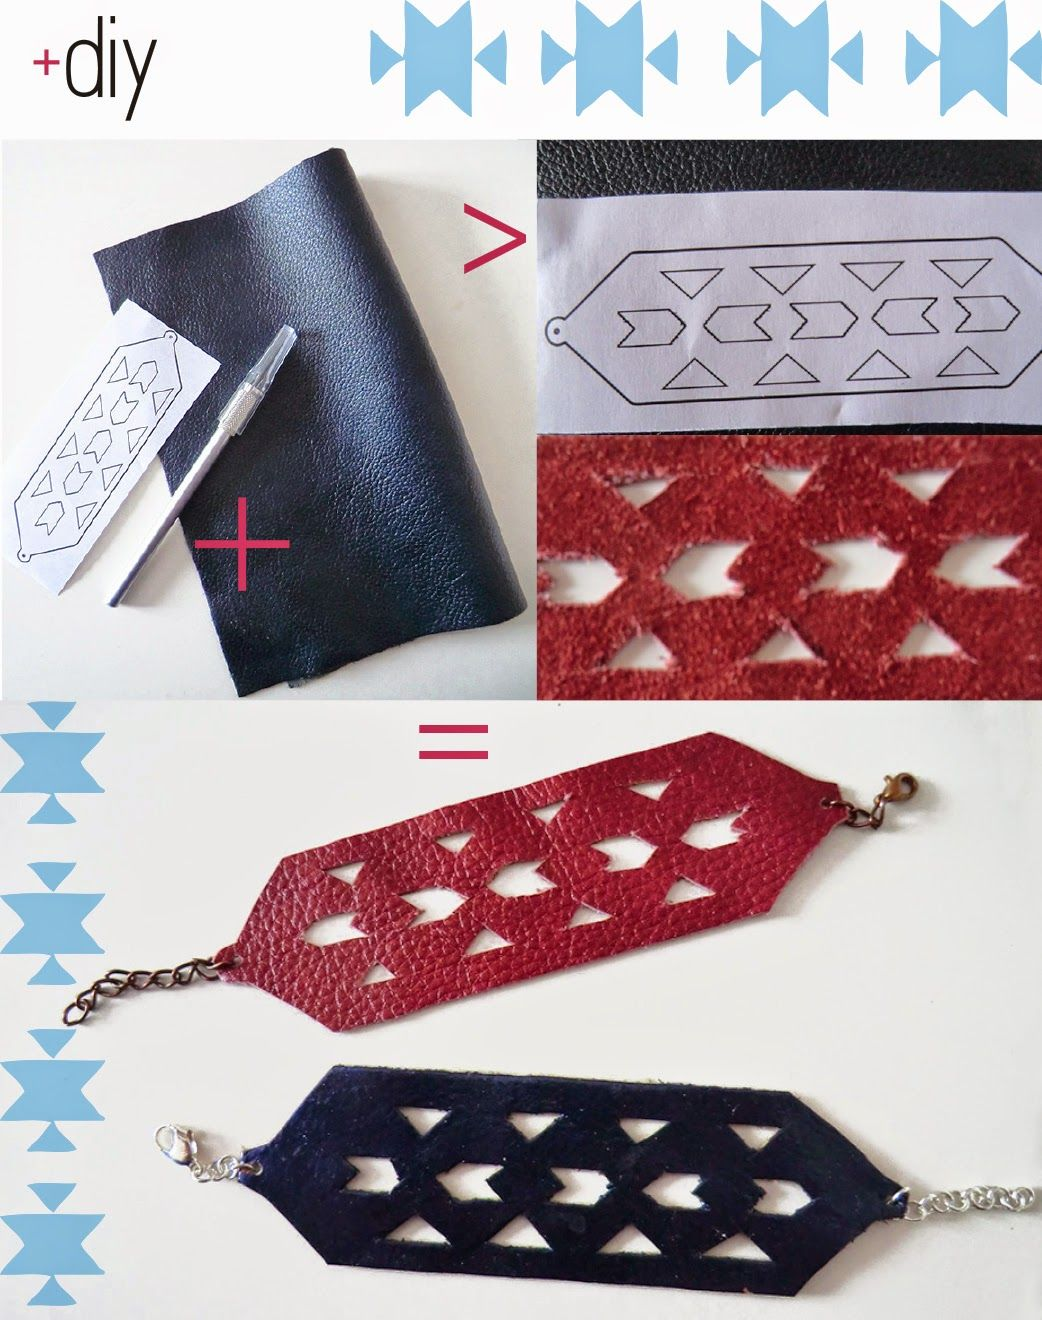 ID+DIY • Cut out leather bracelet • All rights reserved ID+DIY 2014 ©